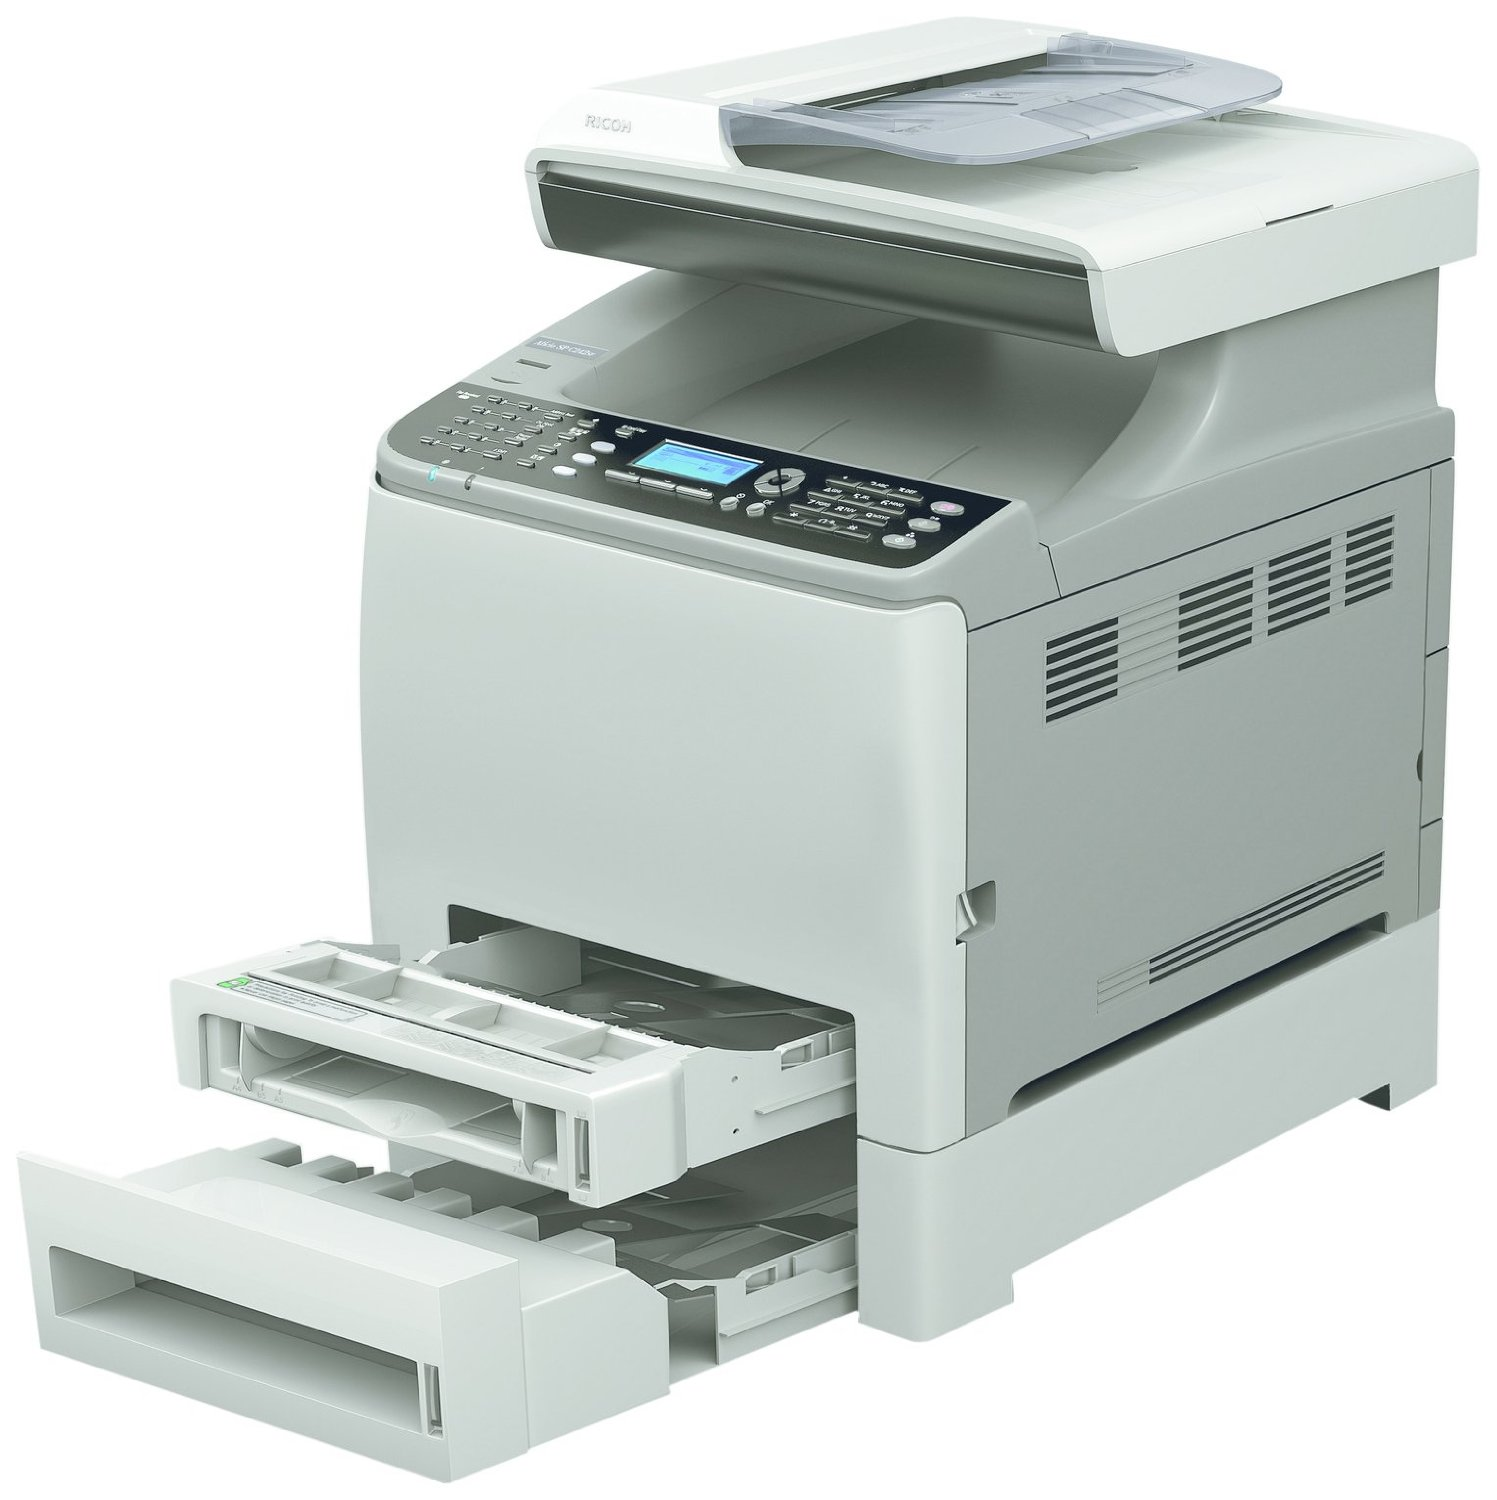 Related Post Ricoh Aficio 1105 Driver Software Download